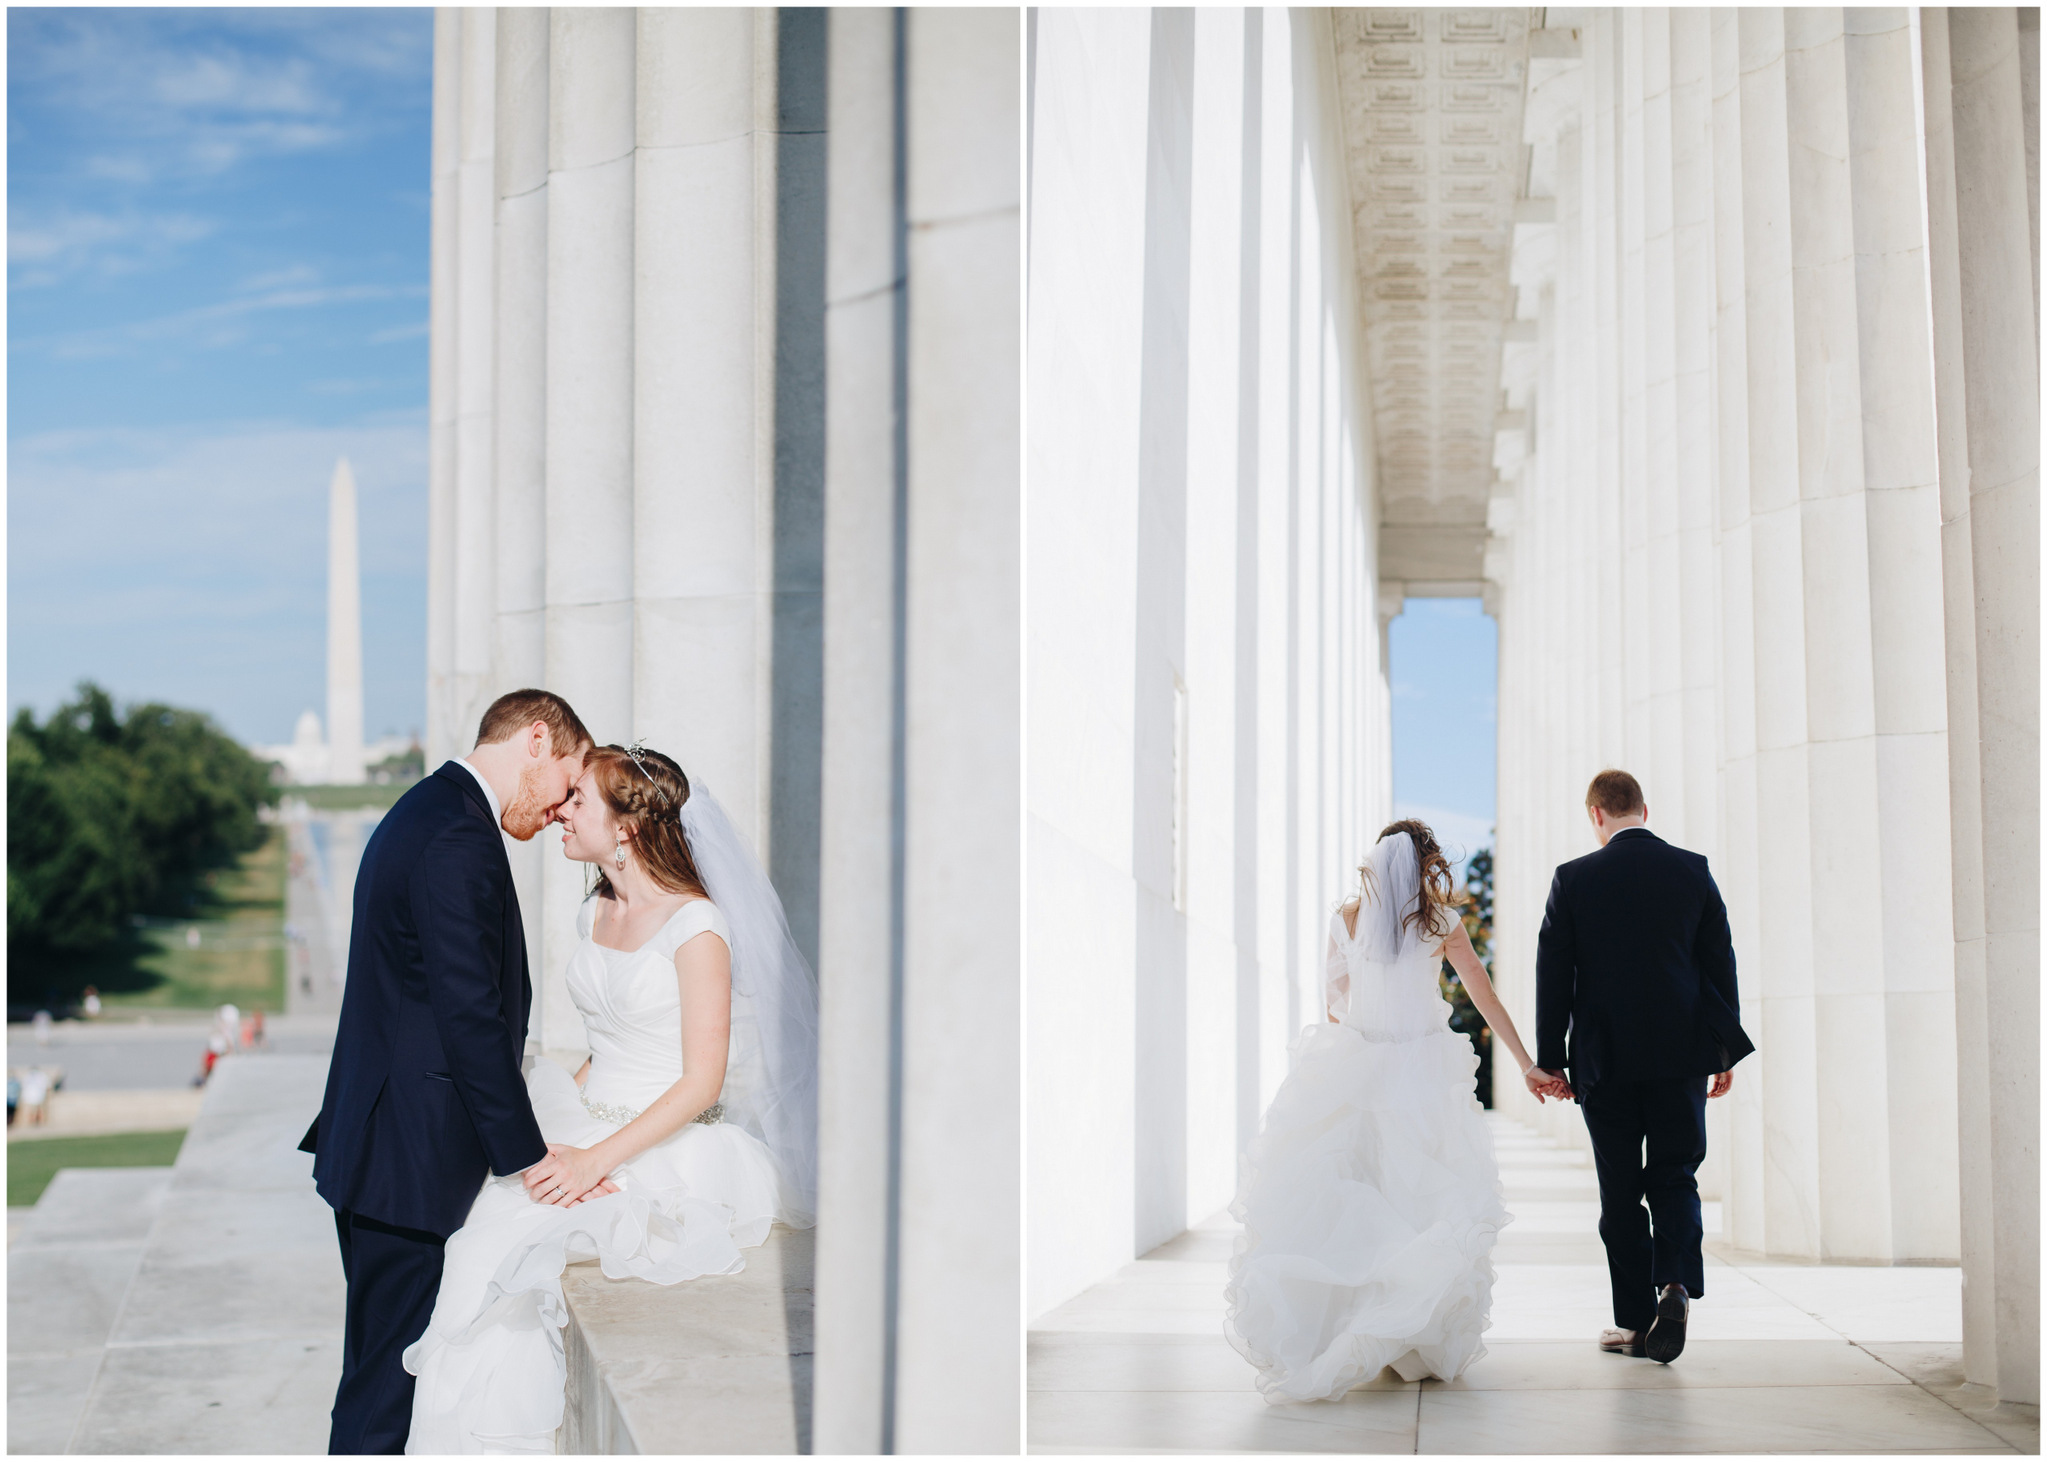 washington dc, lincoln memorial wedding photos, couple portraits washington memorial